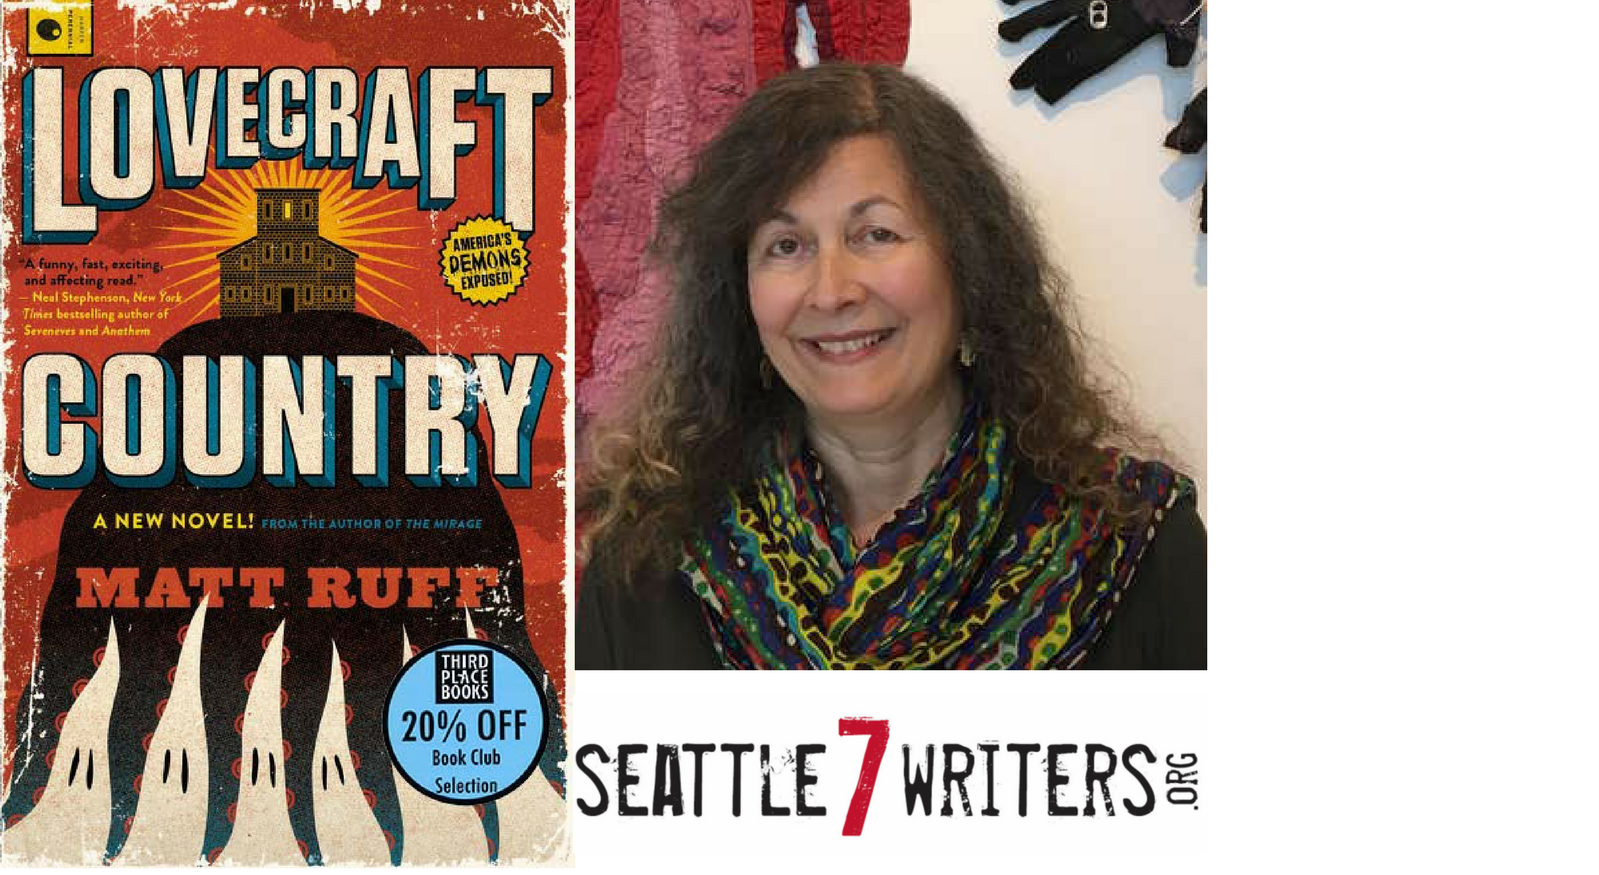 Seattle7Writers' Book Club with Kathleen Alcala - Lovecraft Country